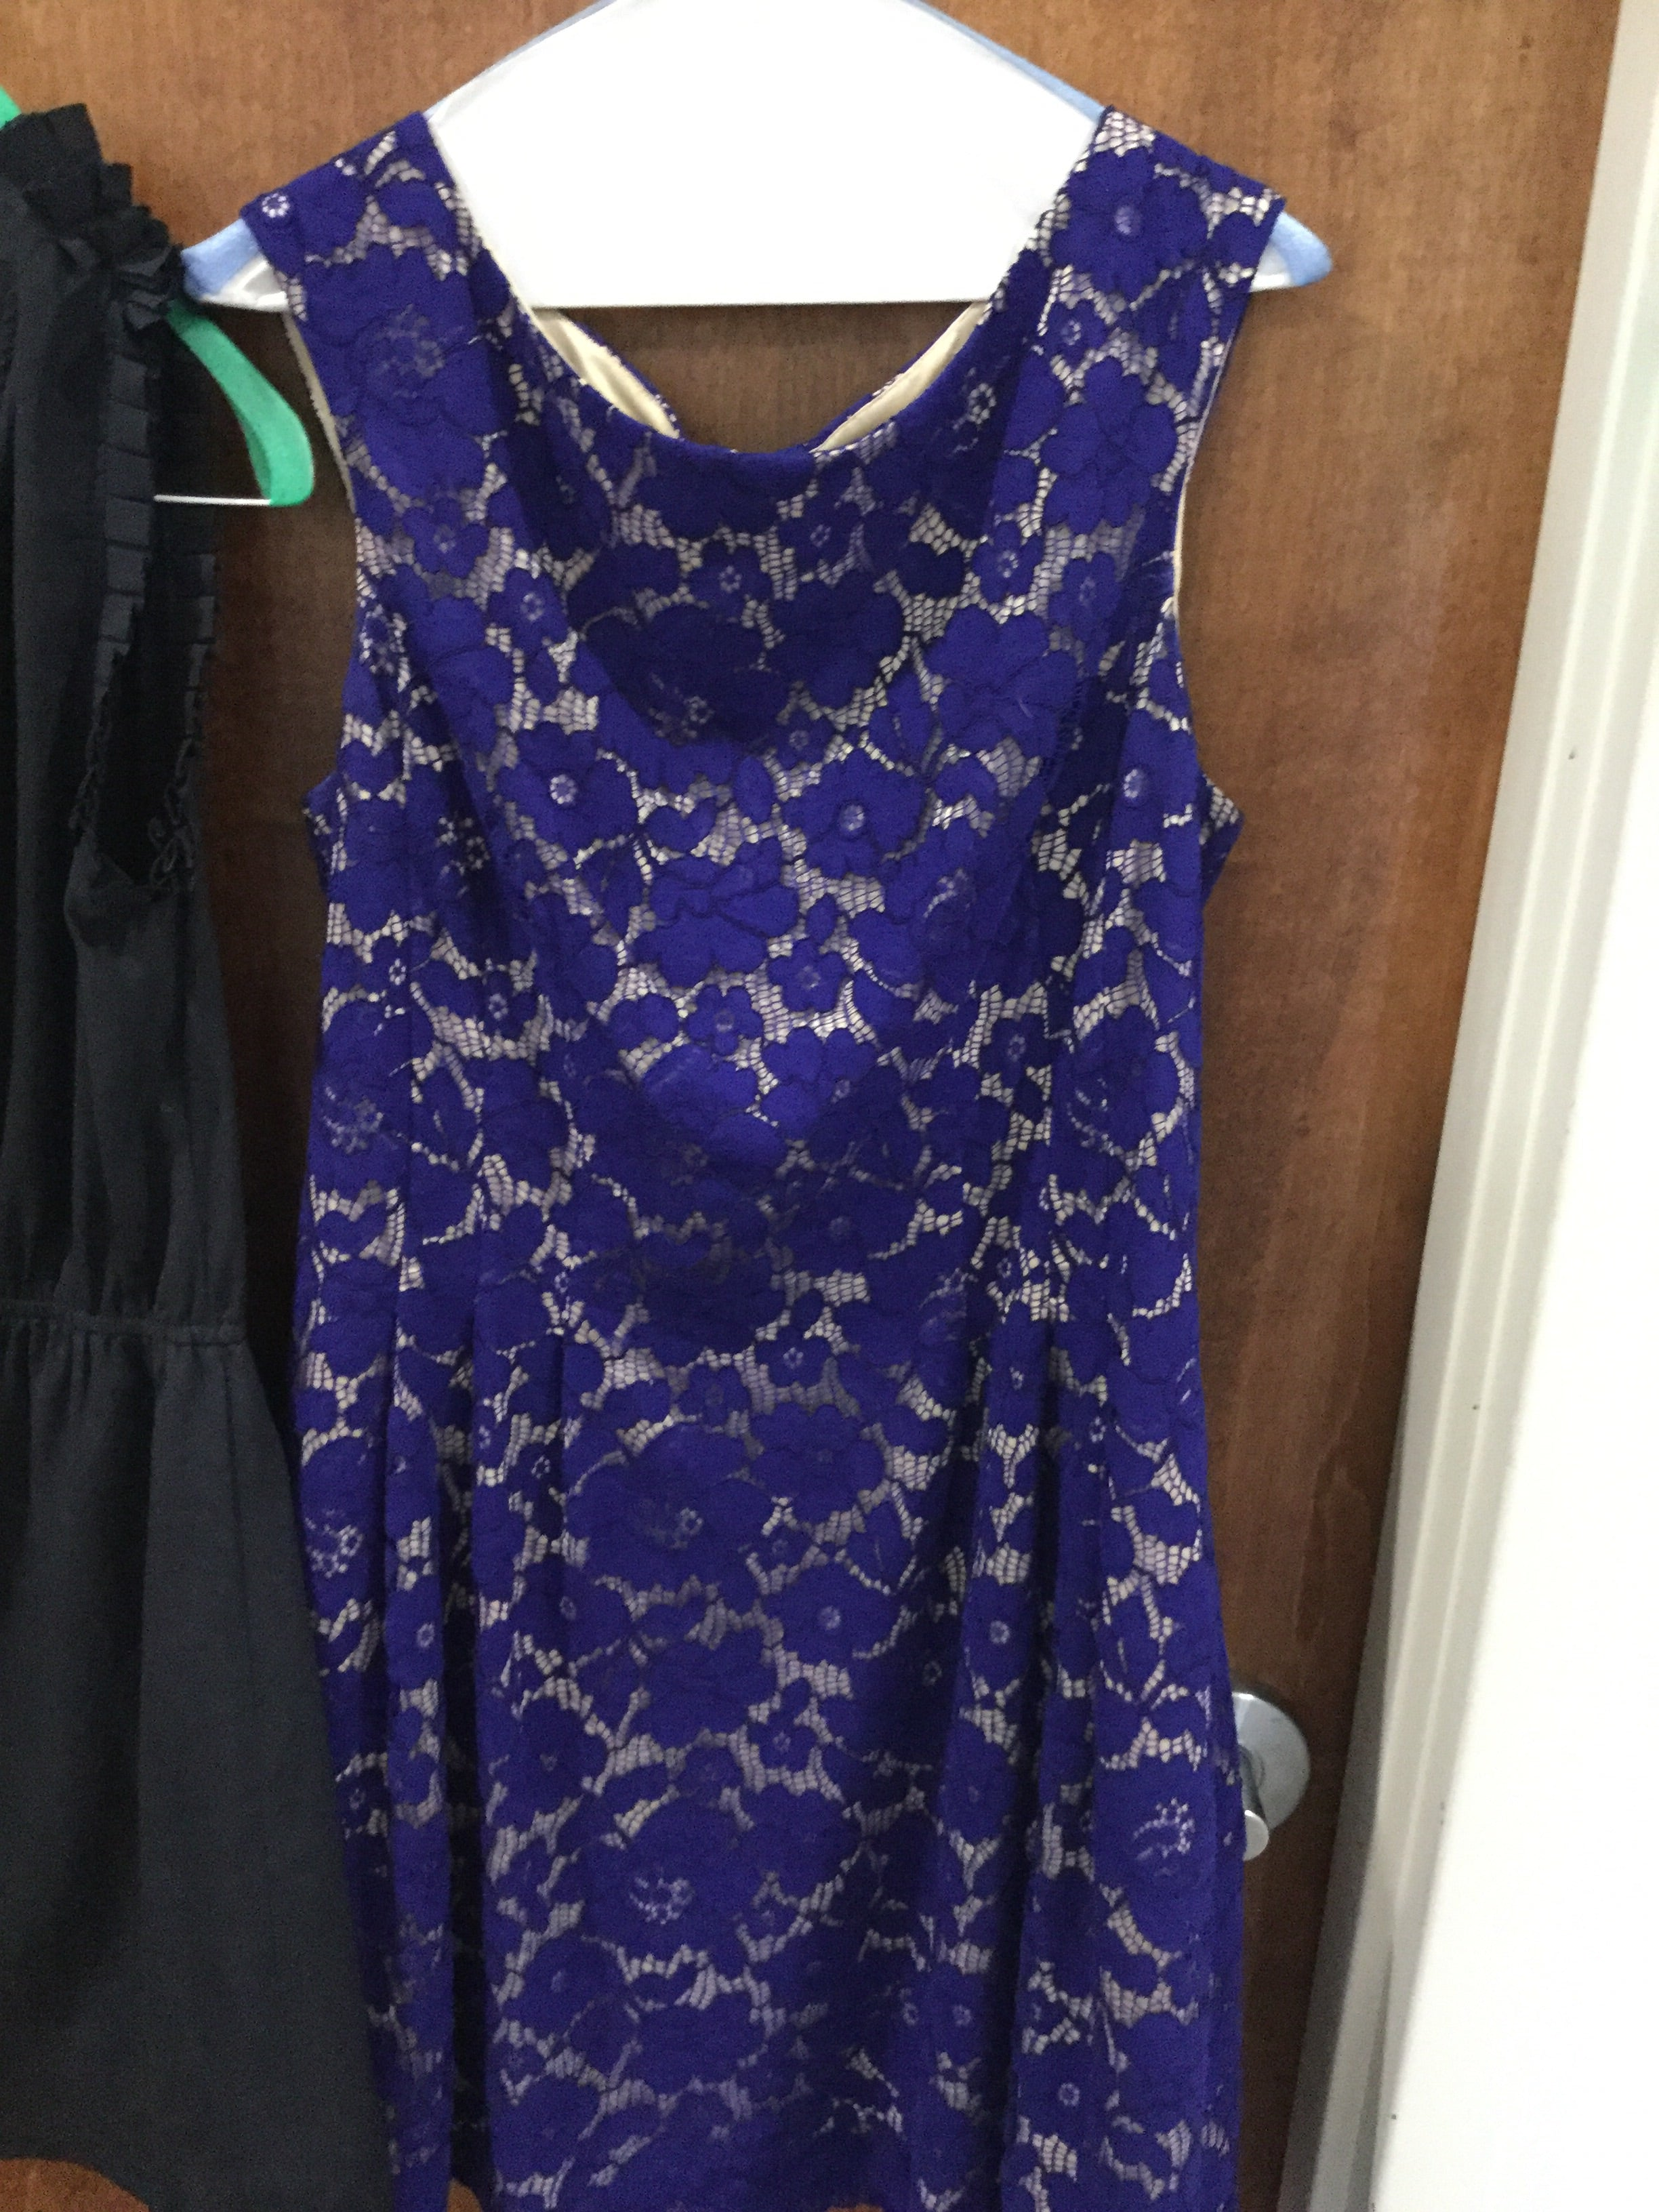 Blue lace size 14 Vince Camuto June 2018 Kelly catalano